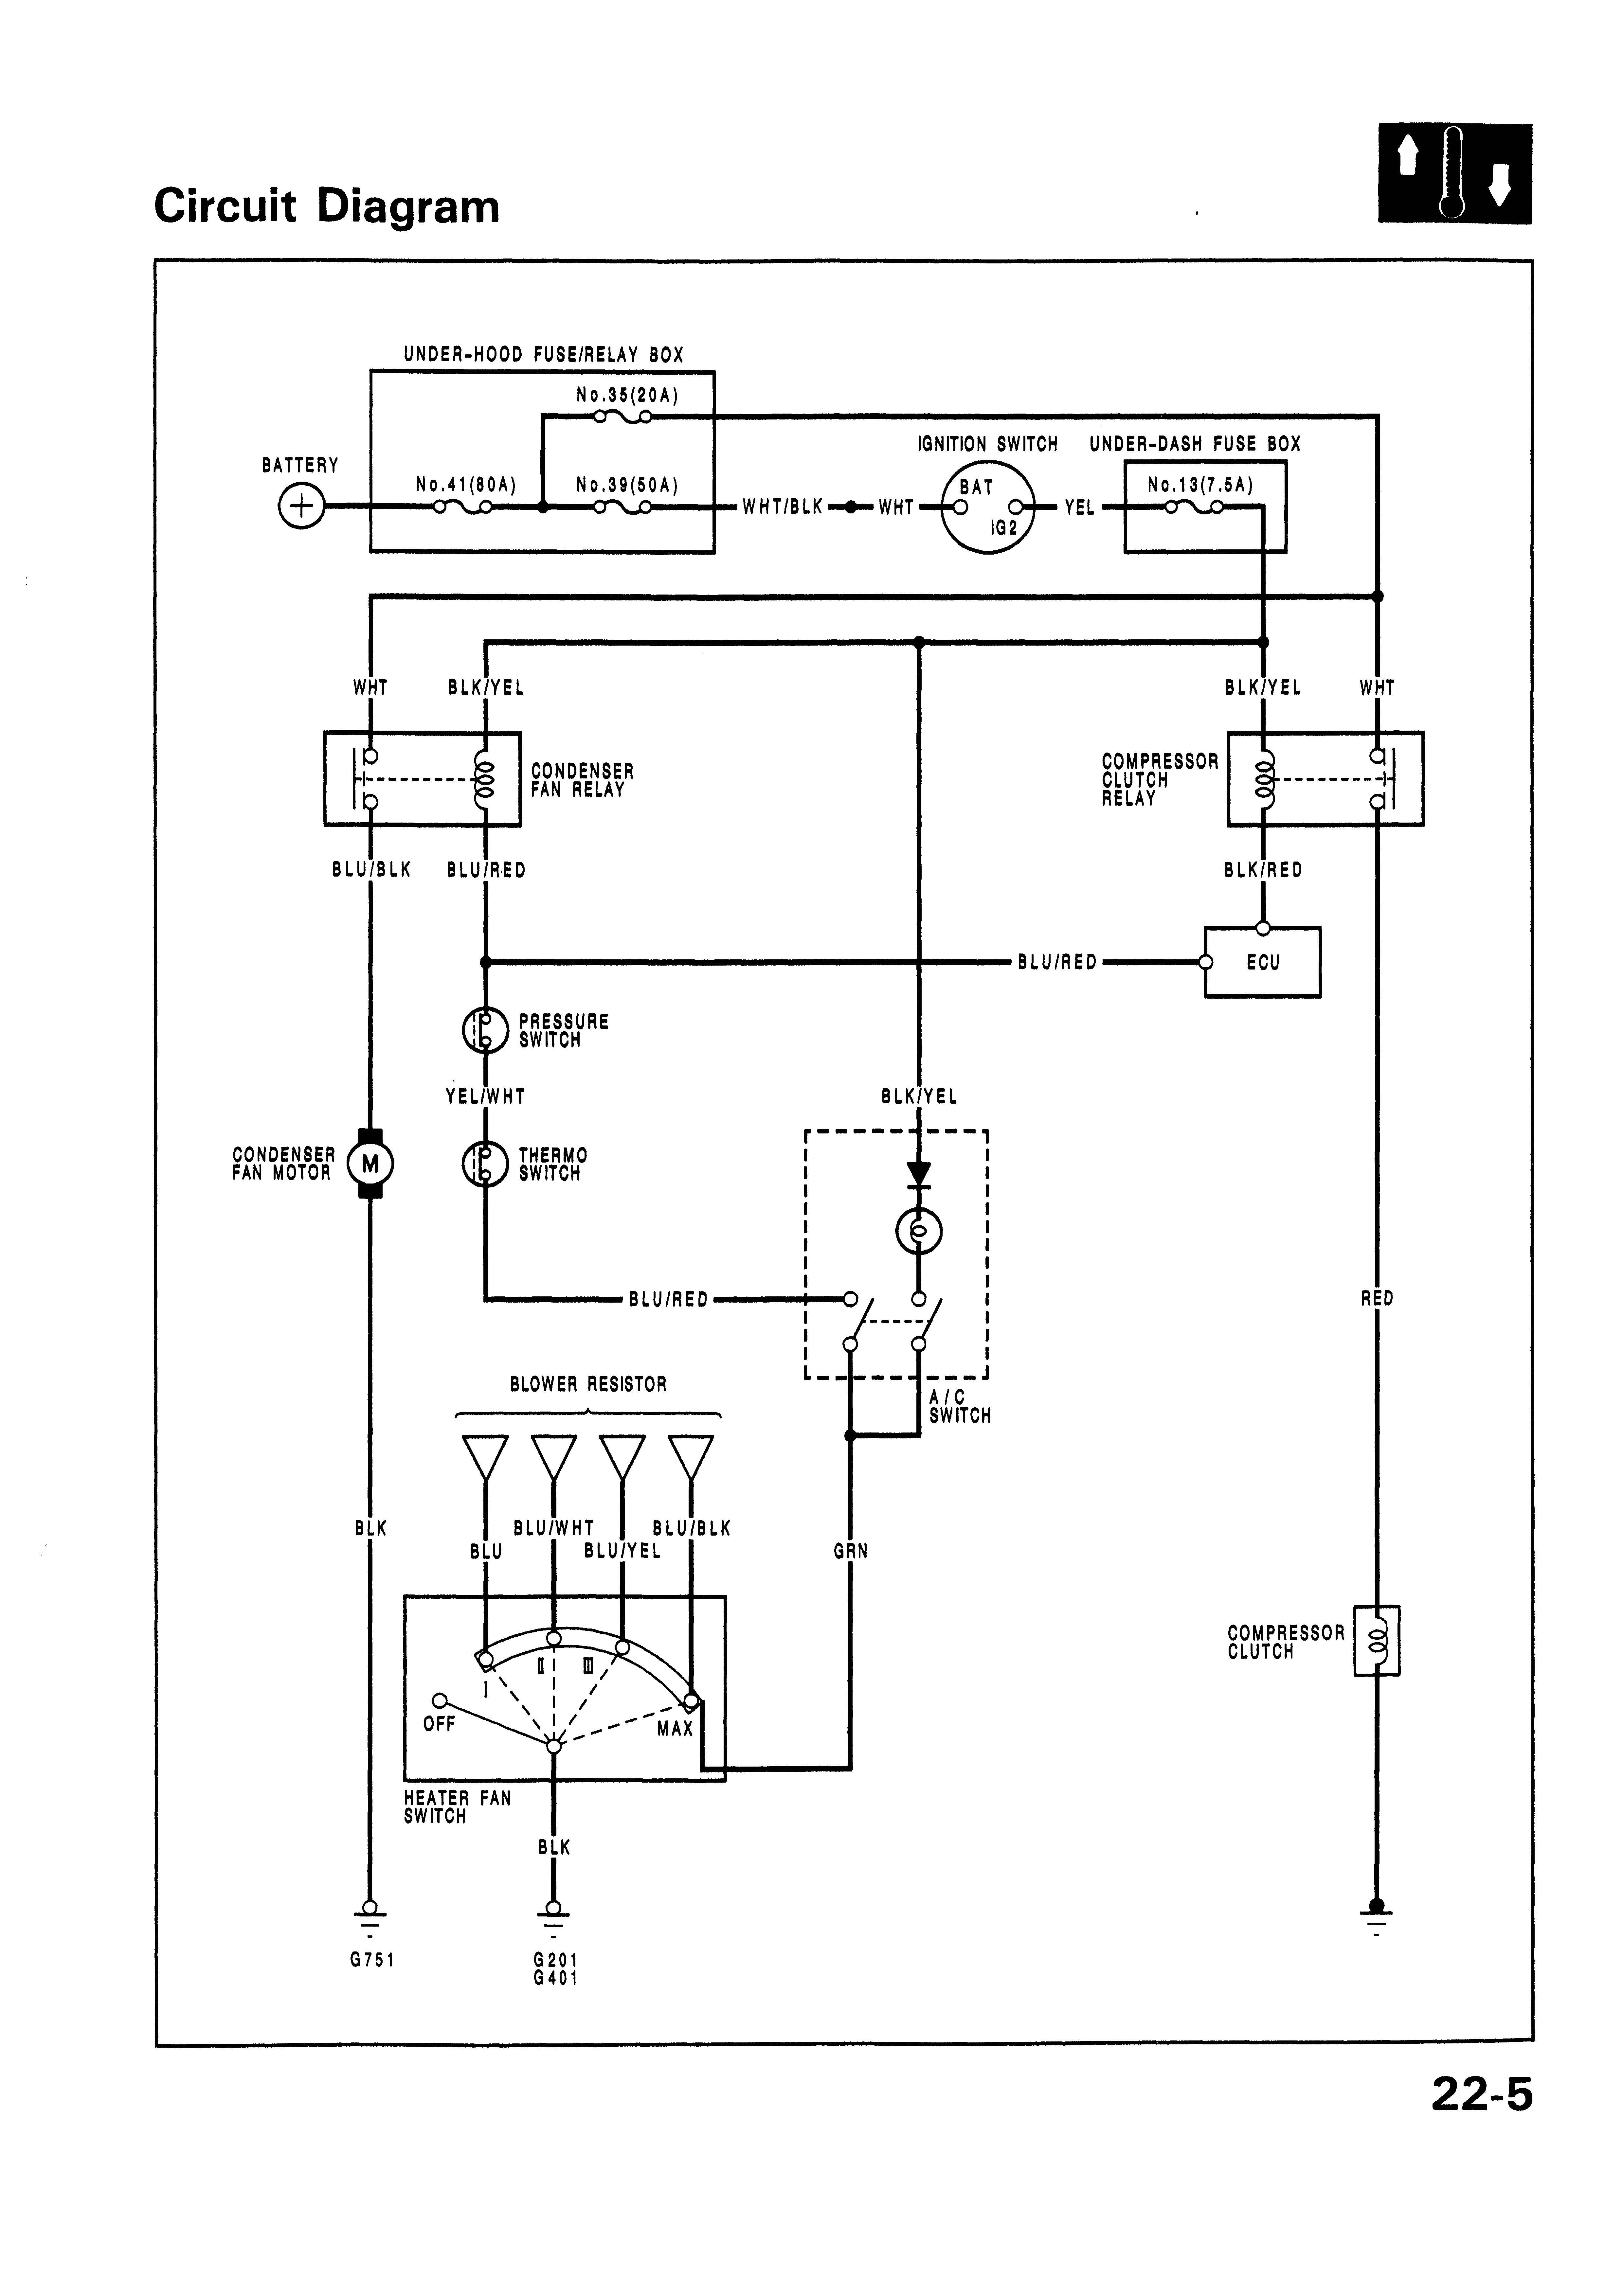 Carrier Air Conditioner Wiring Diagram Amazing Air Conditioner Wiring Diagram Everything You Of Carrier Air Conditioner Wiring Diagram